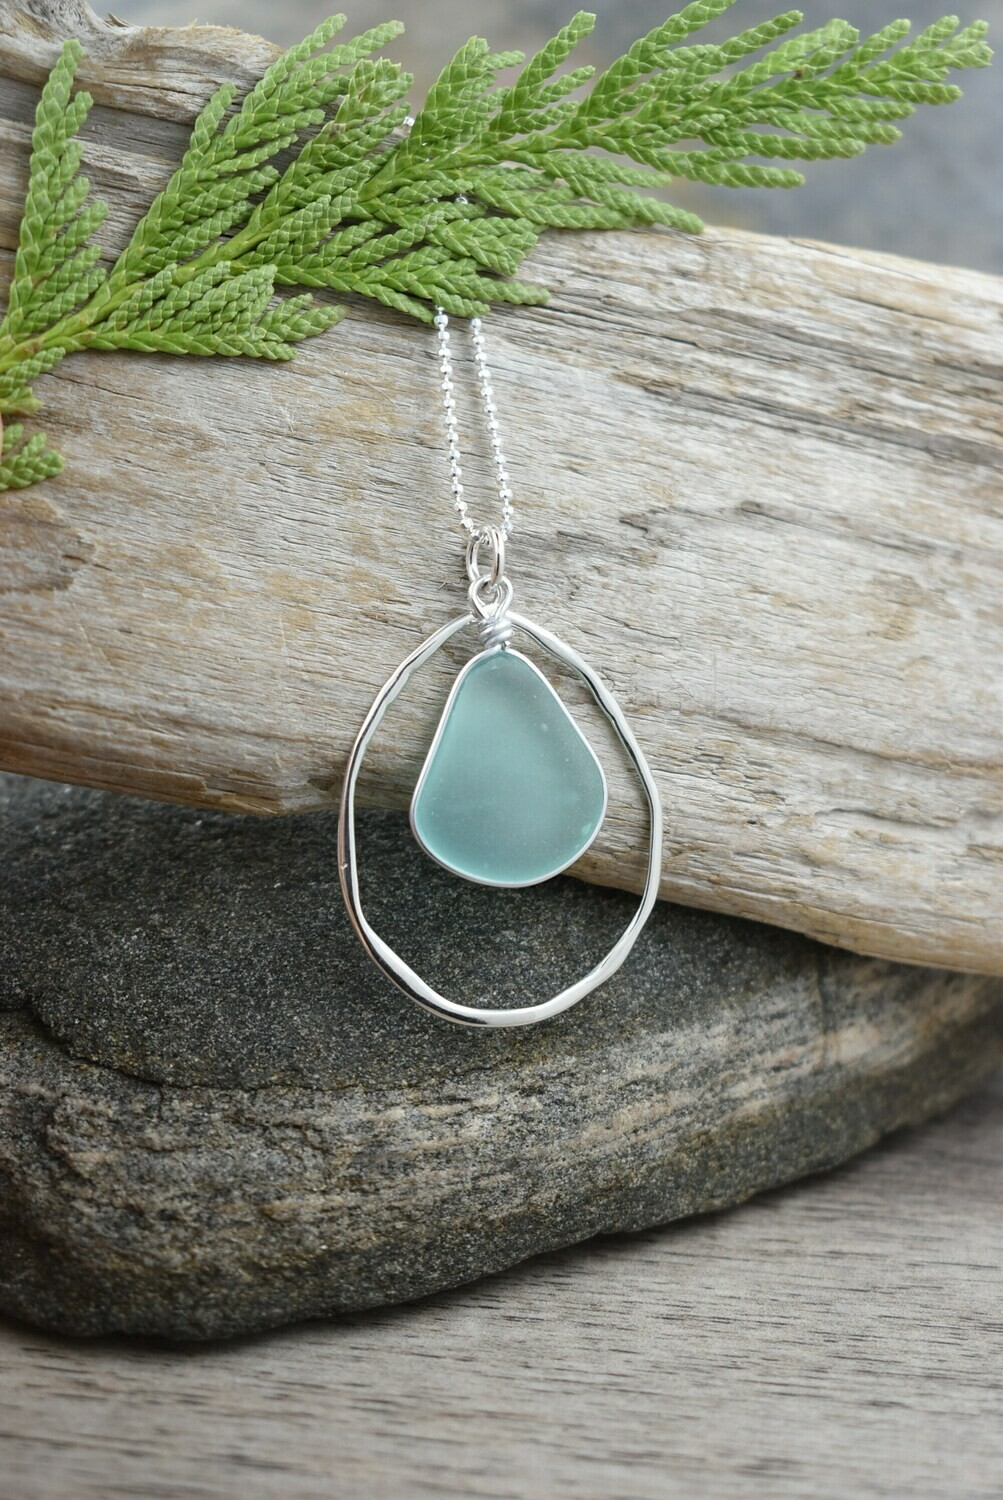 Seaglass Necklace with Organic Silver Frame  (matching piece available)